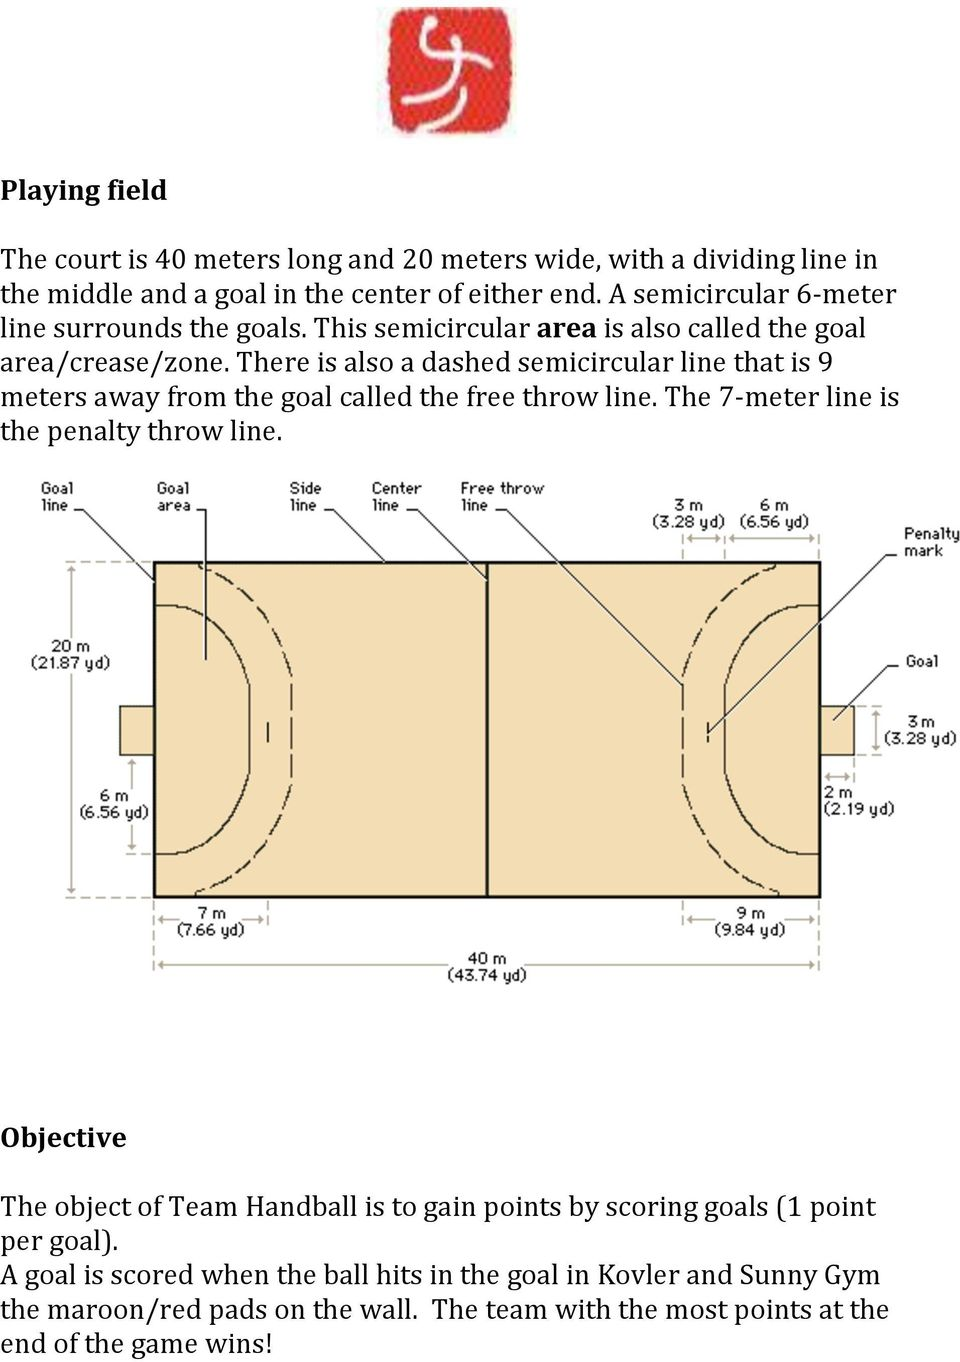 There is also a dashed semicircular line that is 9 meters away from the goal called the free throw line. The 7 meter line is the penalty throw line.